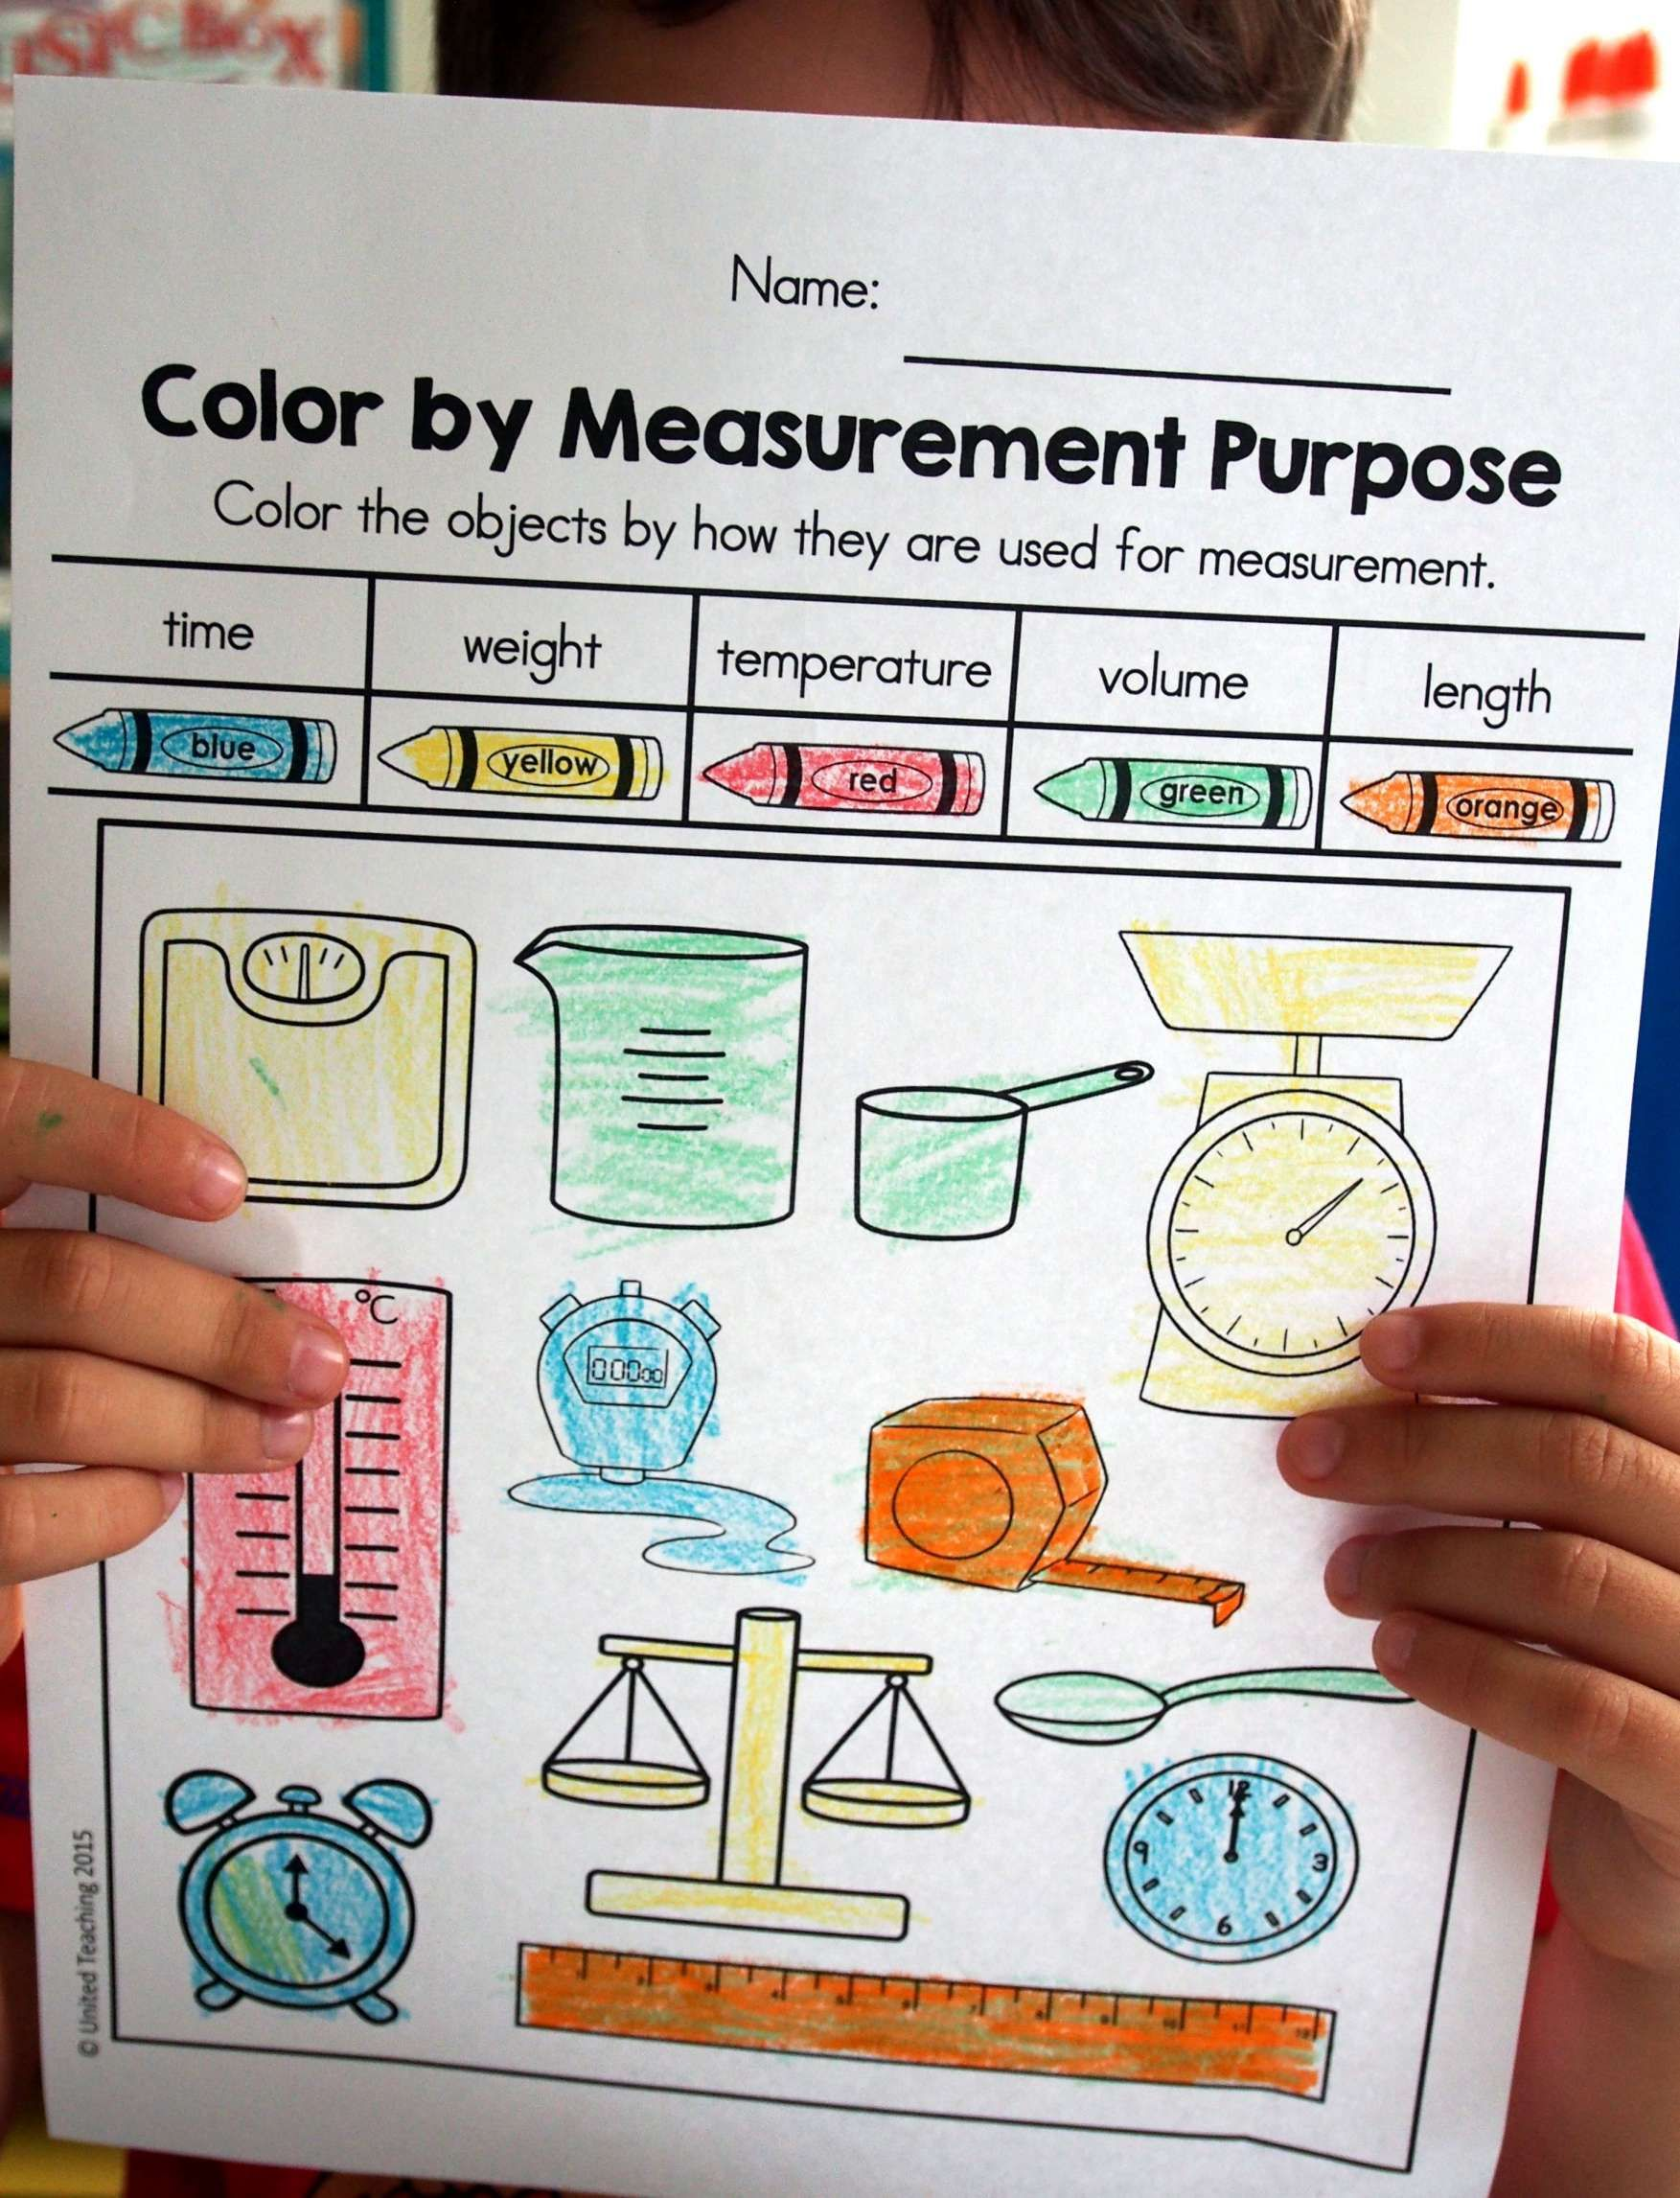 12 Measurement Tools Worksheet Kindergarten